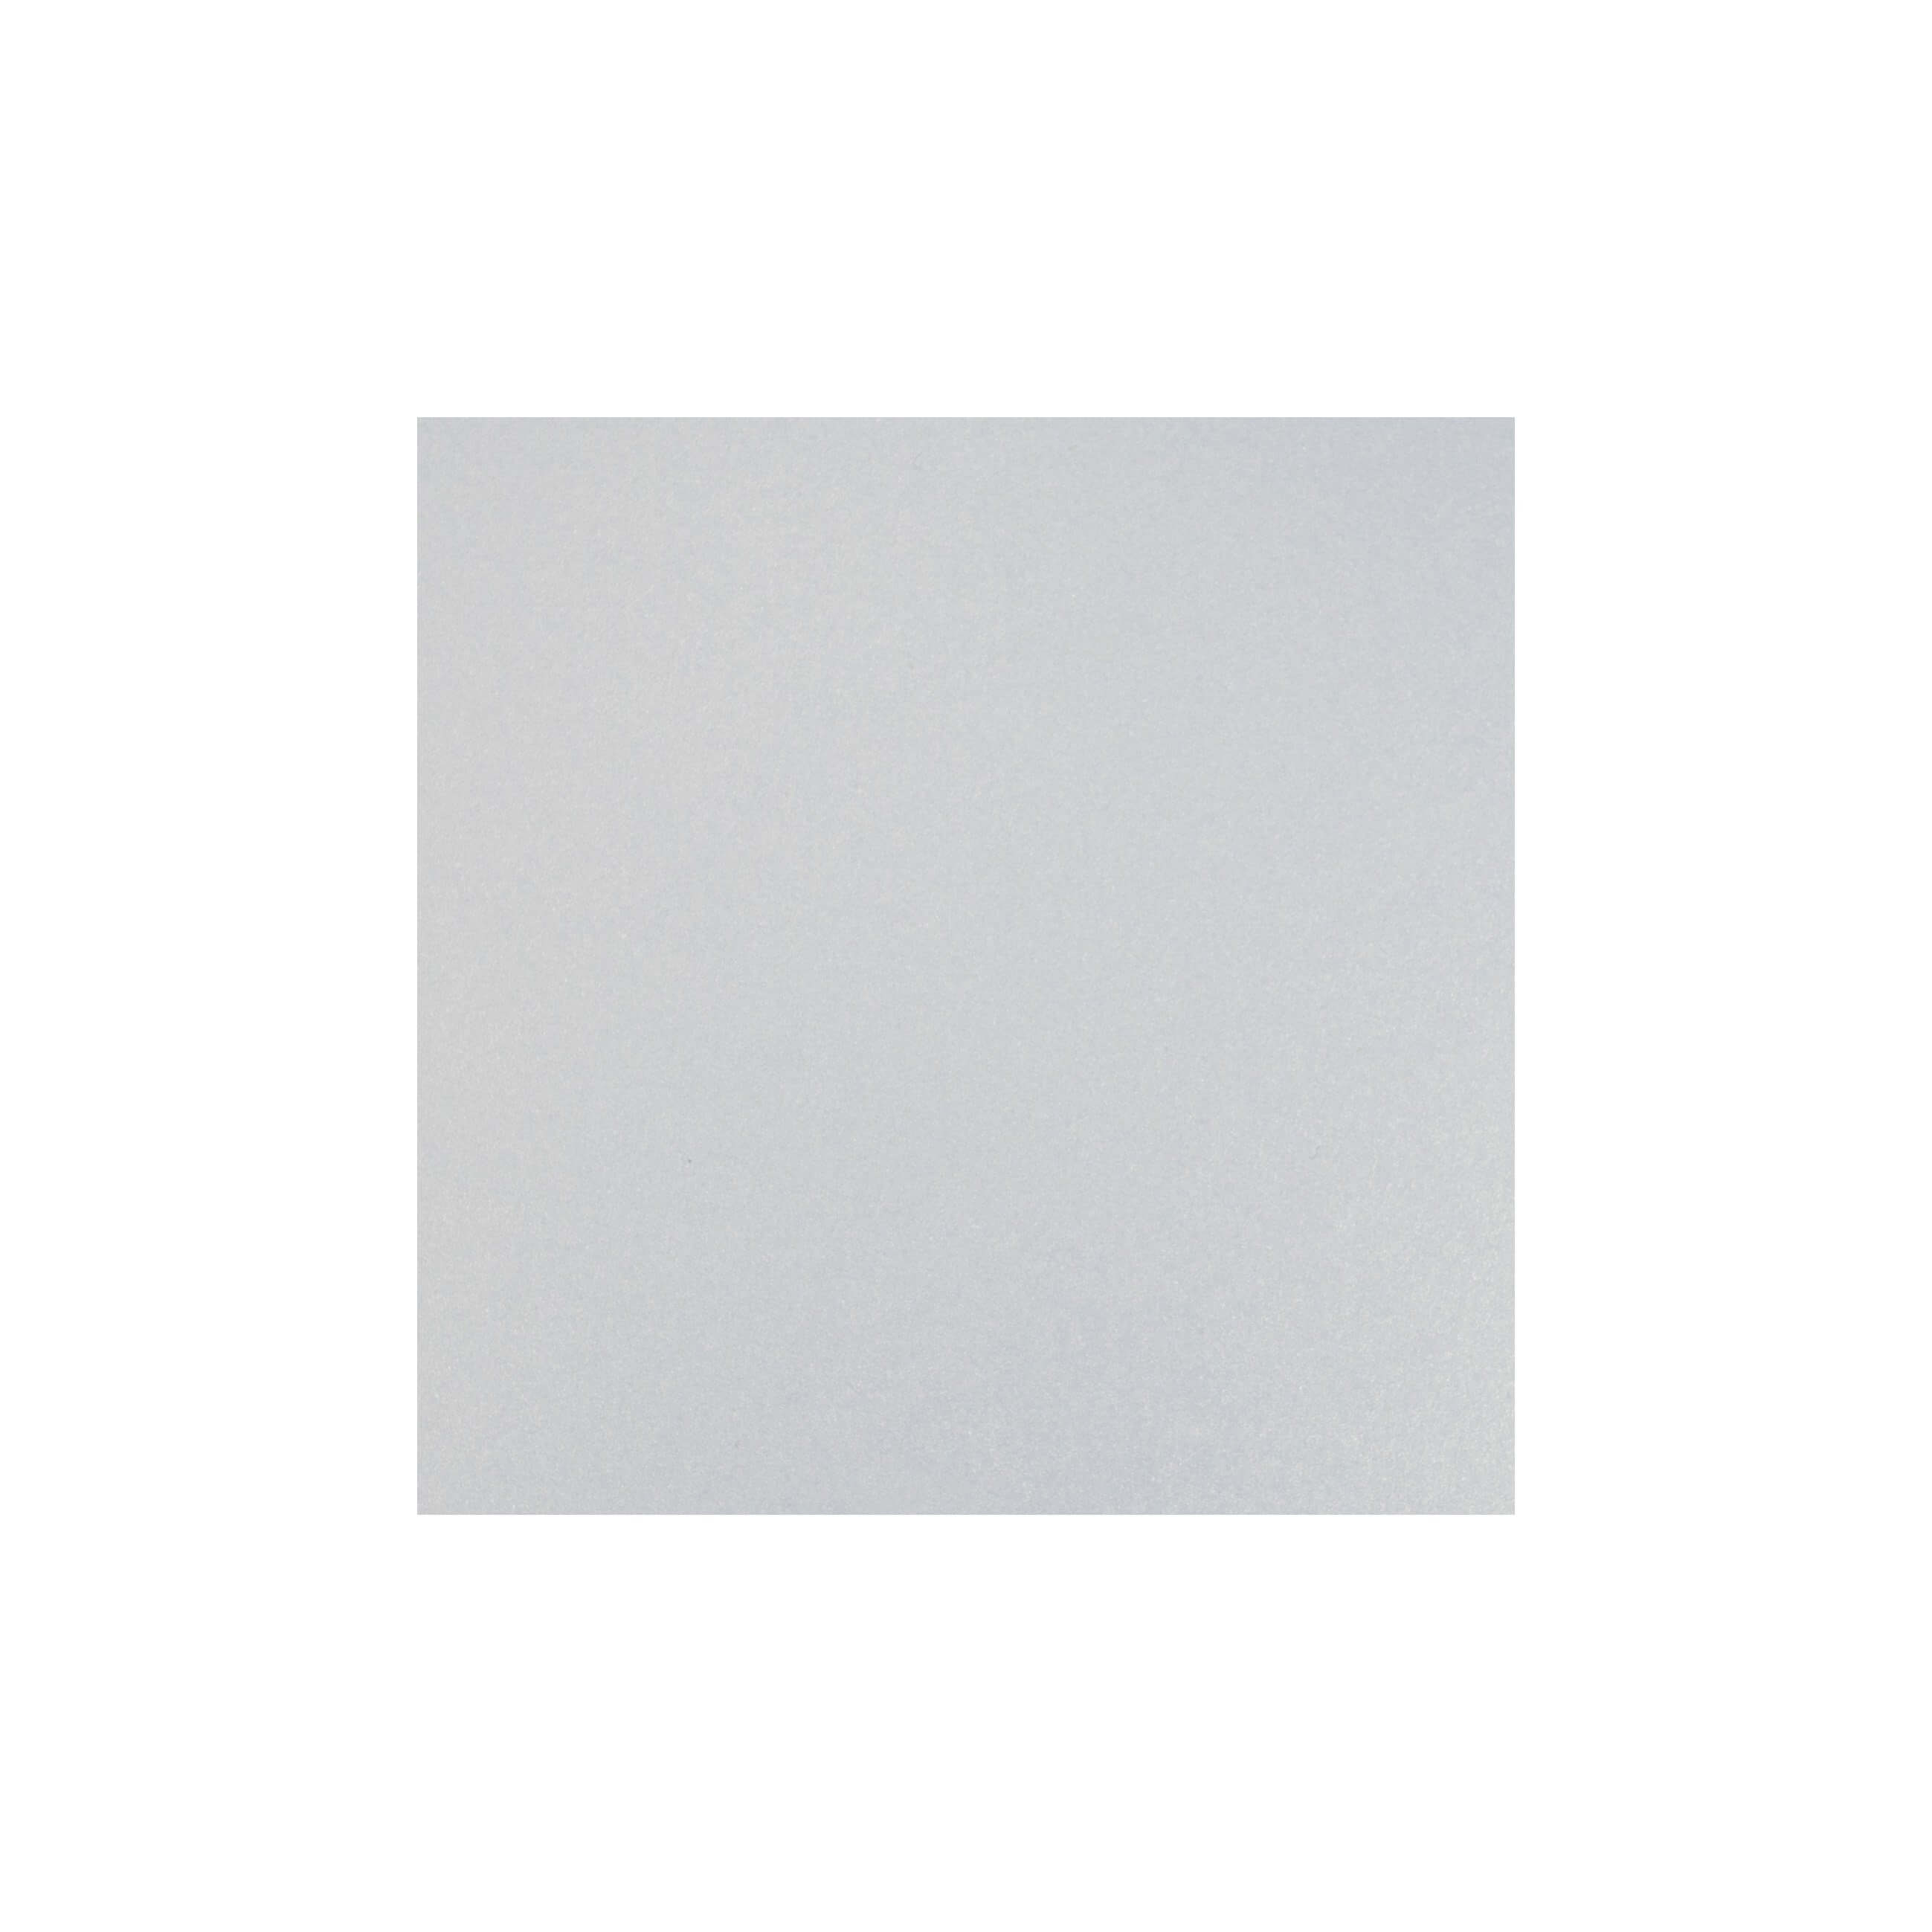 Cardstock 125mm Square - White Lustre